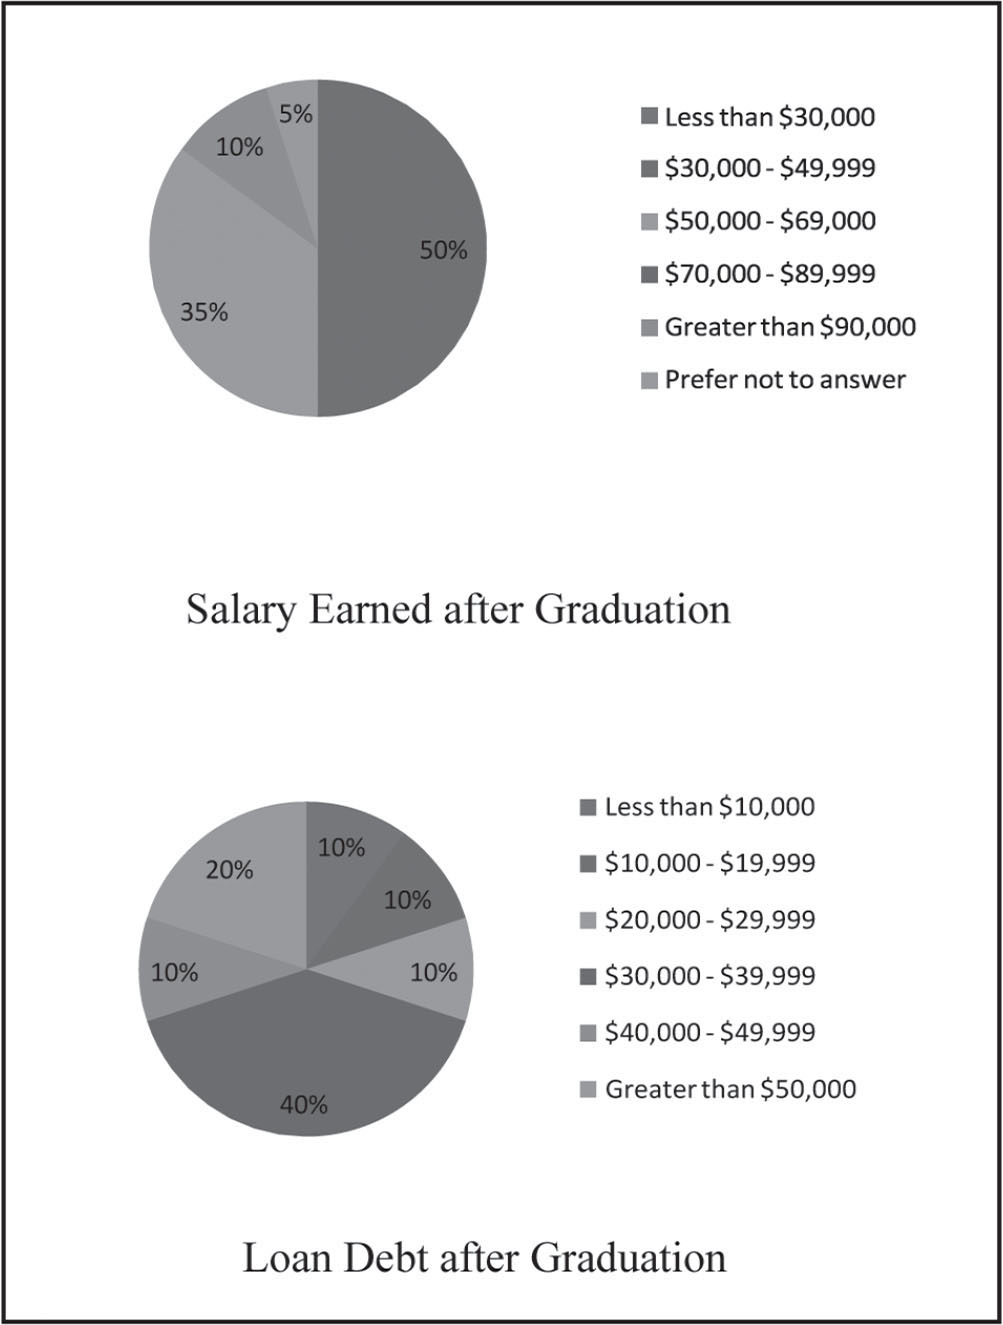 Participants' salary earned and loan debt after graduation.